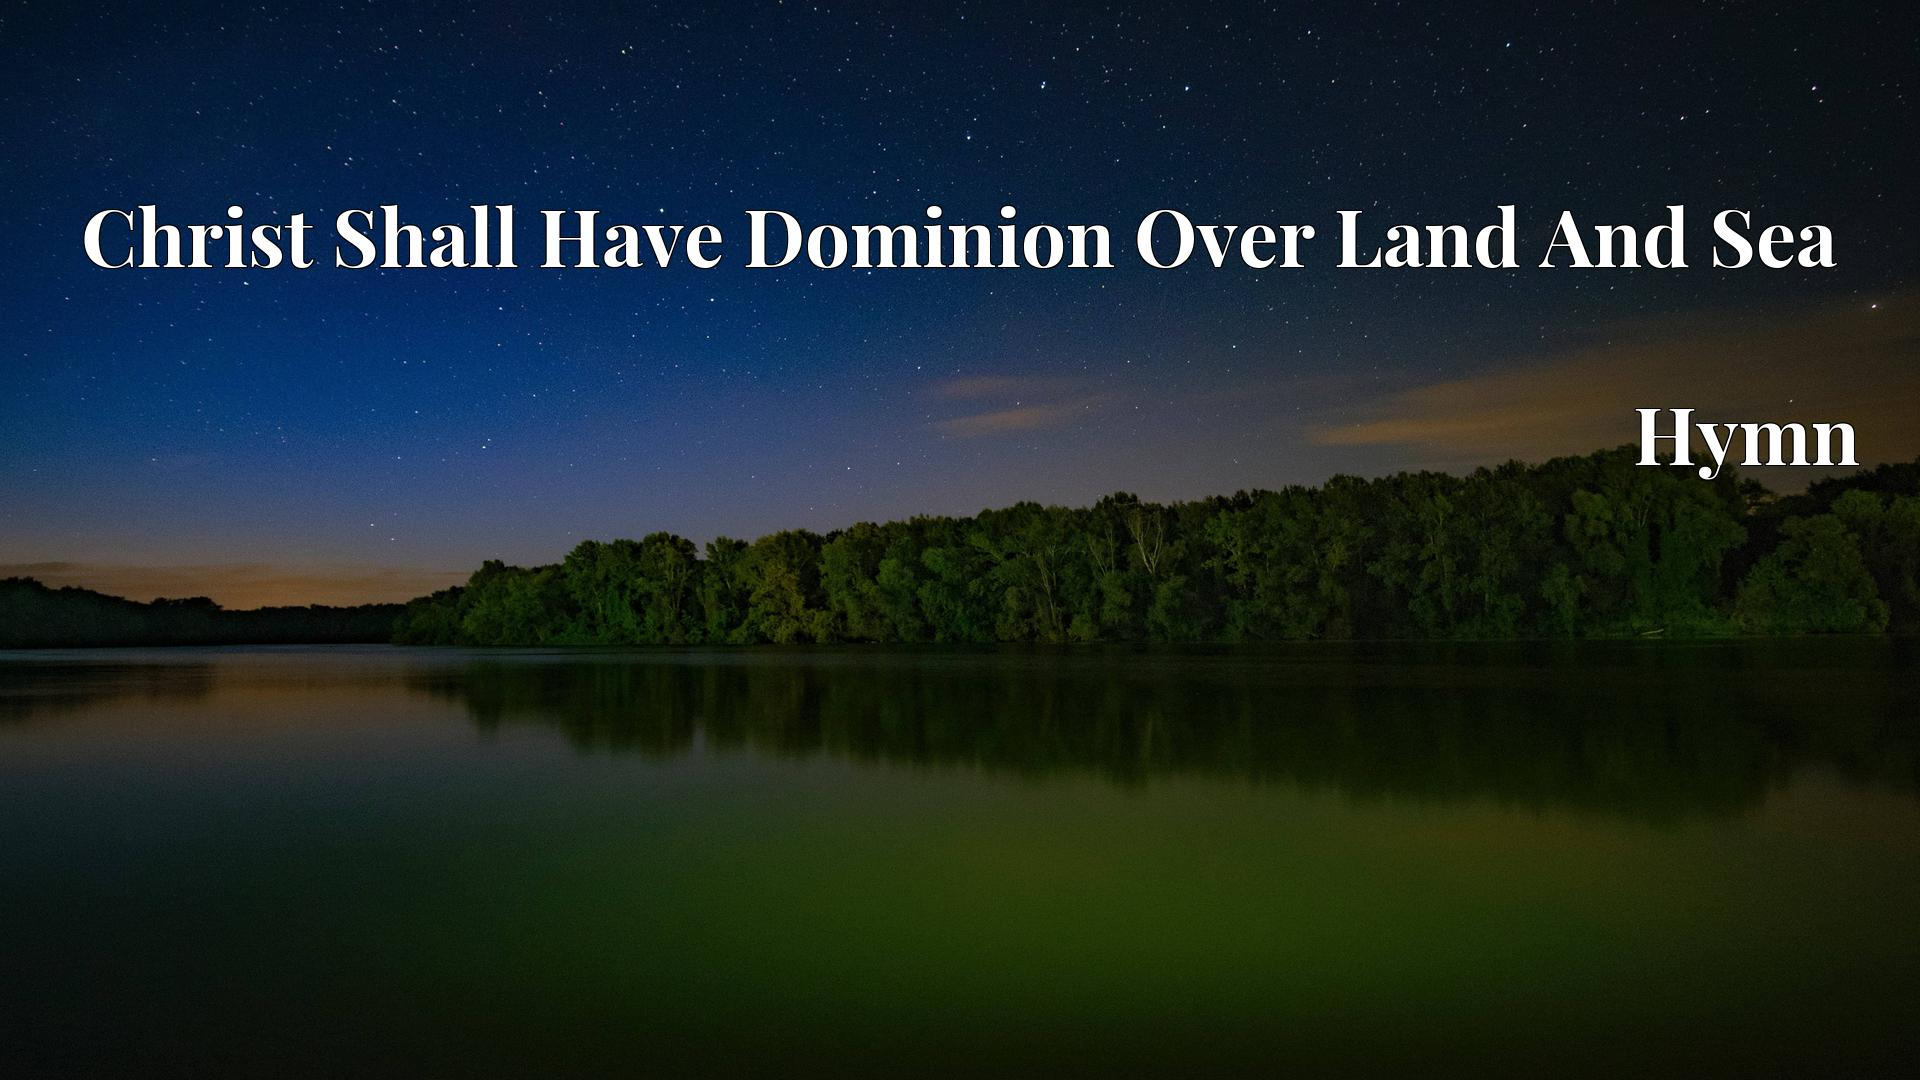 Christ Shall Have Dominion Over Land And Sea - Hymn